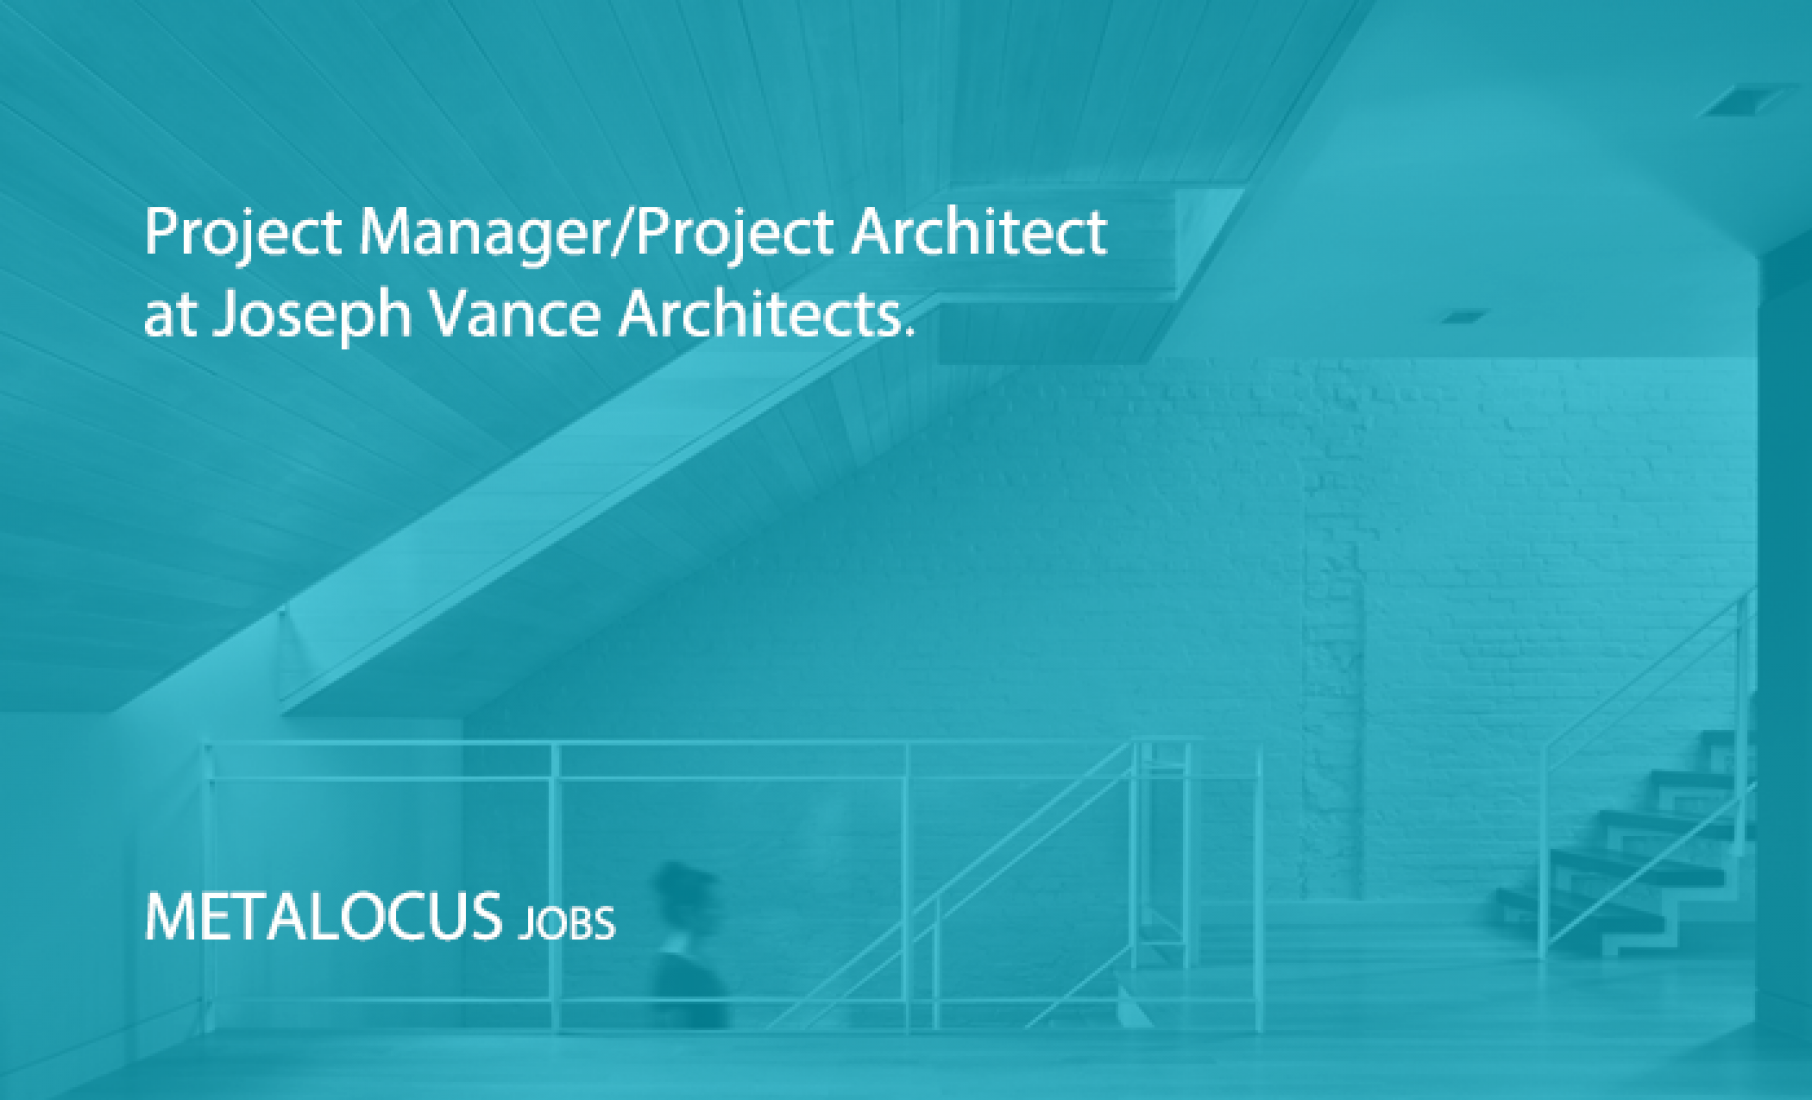 Project Manager/Project Architect at Joseph Vance Architects. New York